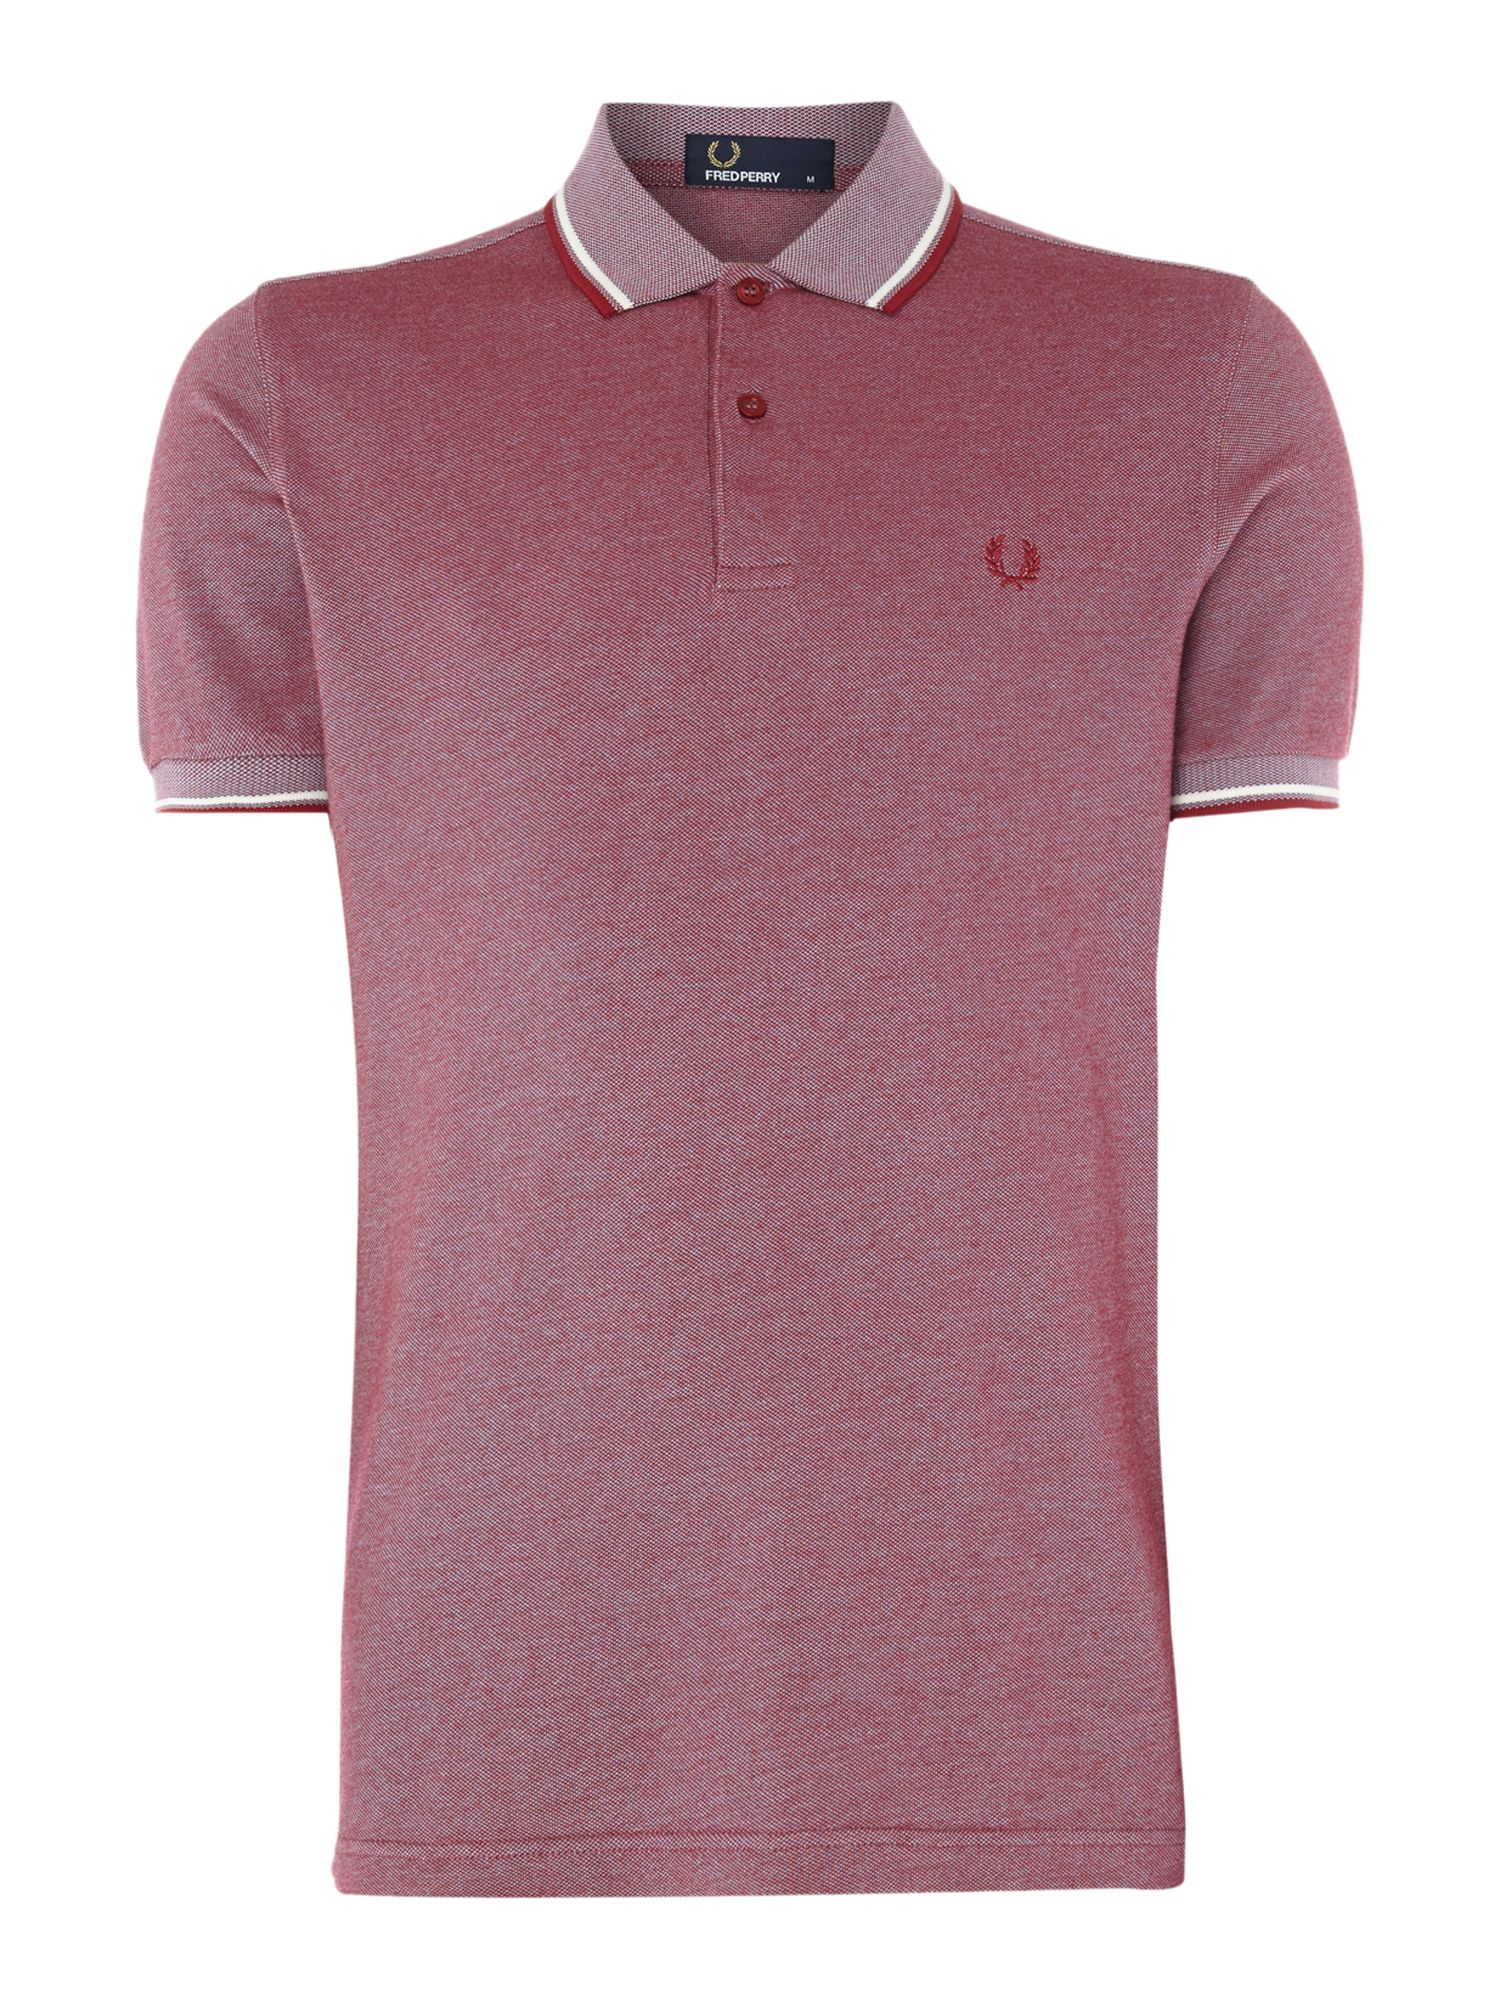 Mens Fred Perry Plain Twin Tipped Polo Shirt Red Marl